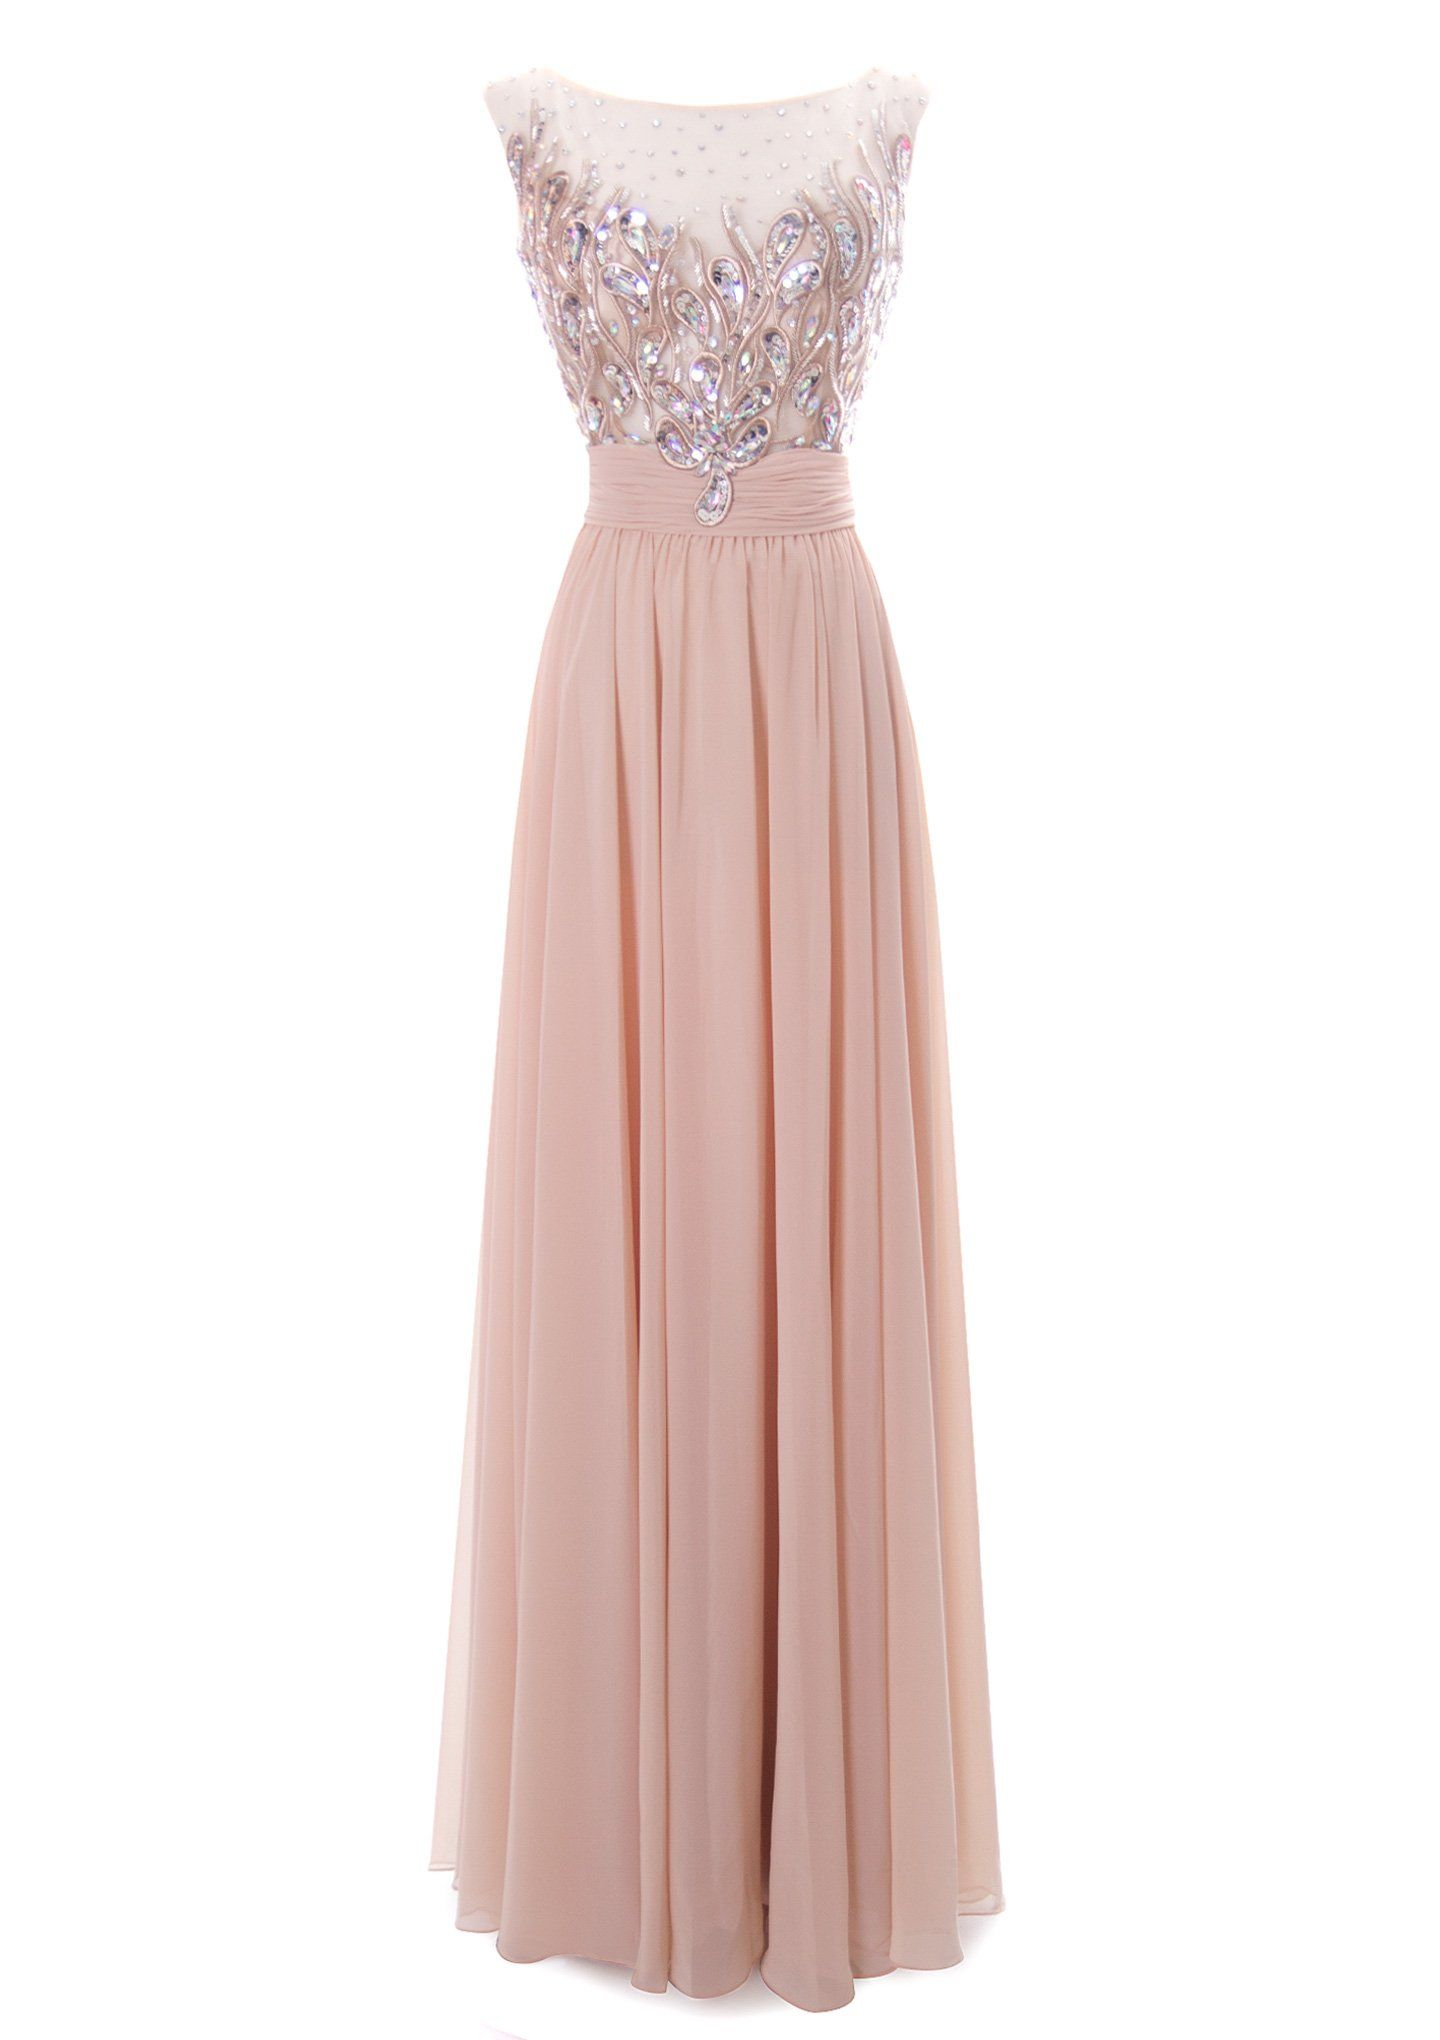 Fiesta Formals Shimmering Embroidered Formal Gown Nude 3XL | Vestido ...